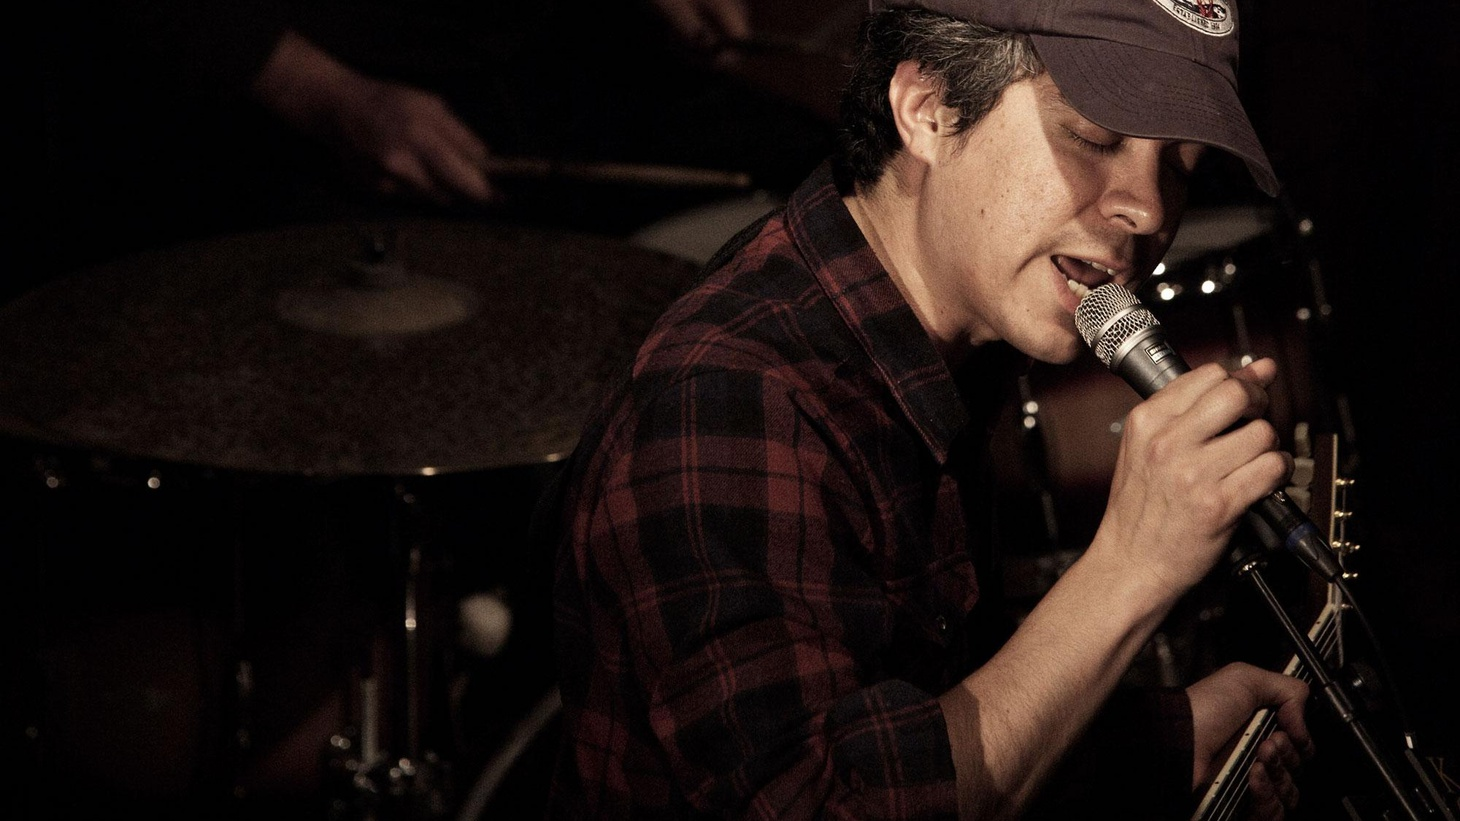 M. Ward's expressive songwriting and excellent guitar playing are on full display in a live set recorded in front of a small audience at KCRW's Apogee Sessions.